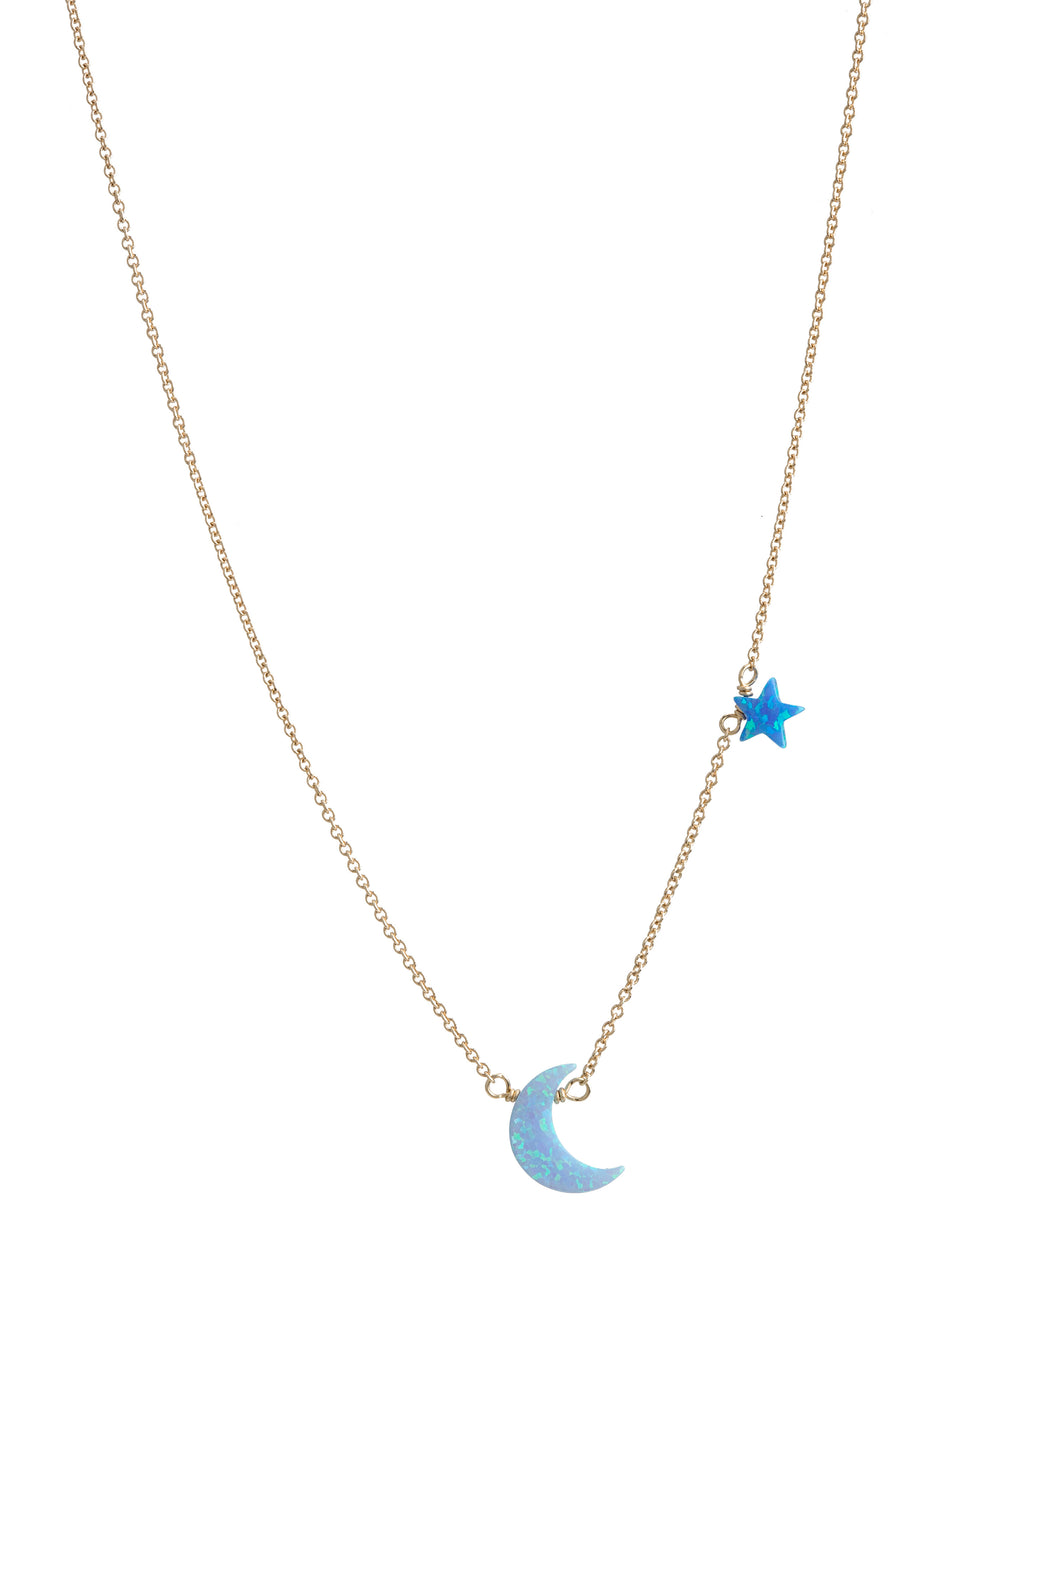 MOON+STAR NECKLACE